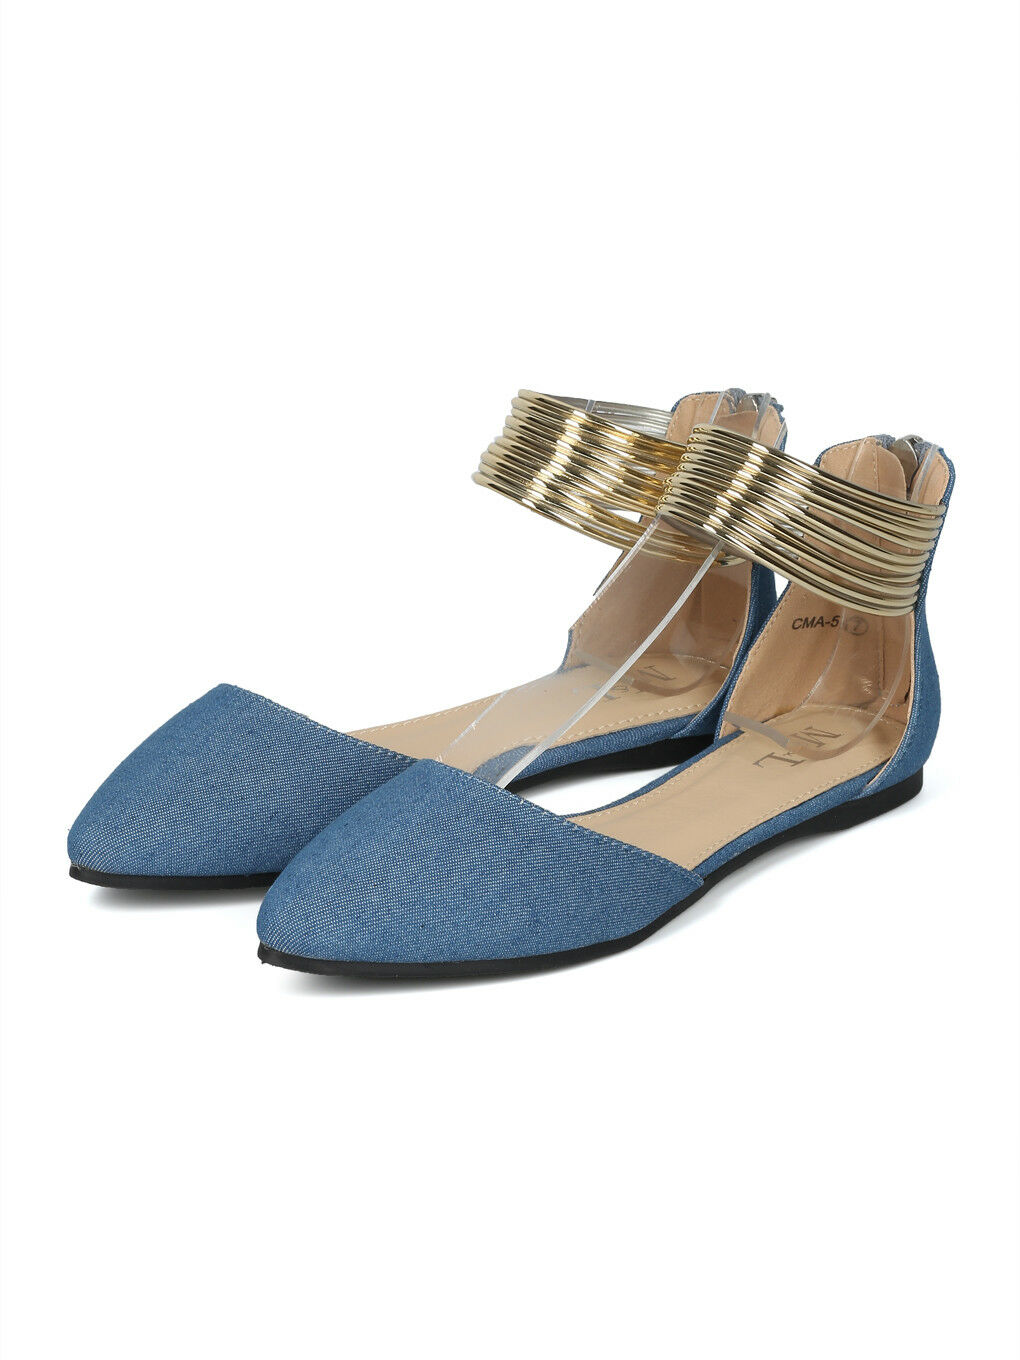 New Women Pointy Toe d'Orsay Strappy Ankle Cuff Flat - 17885 By ML